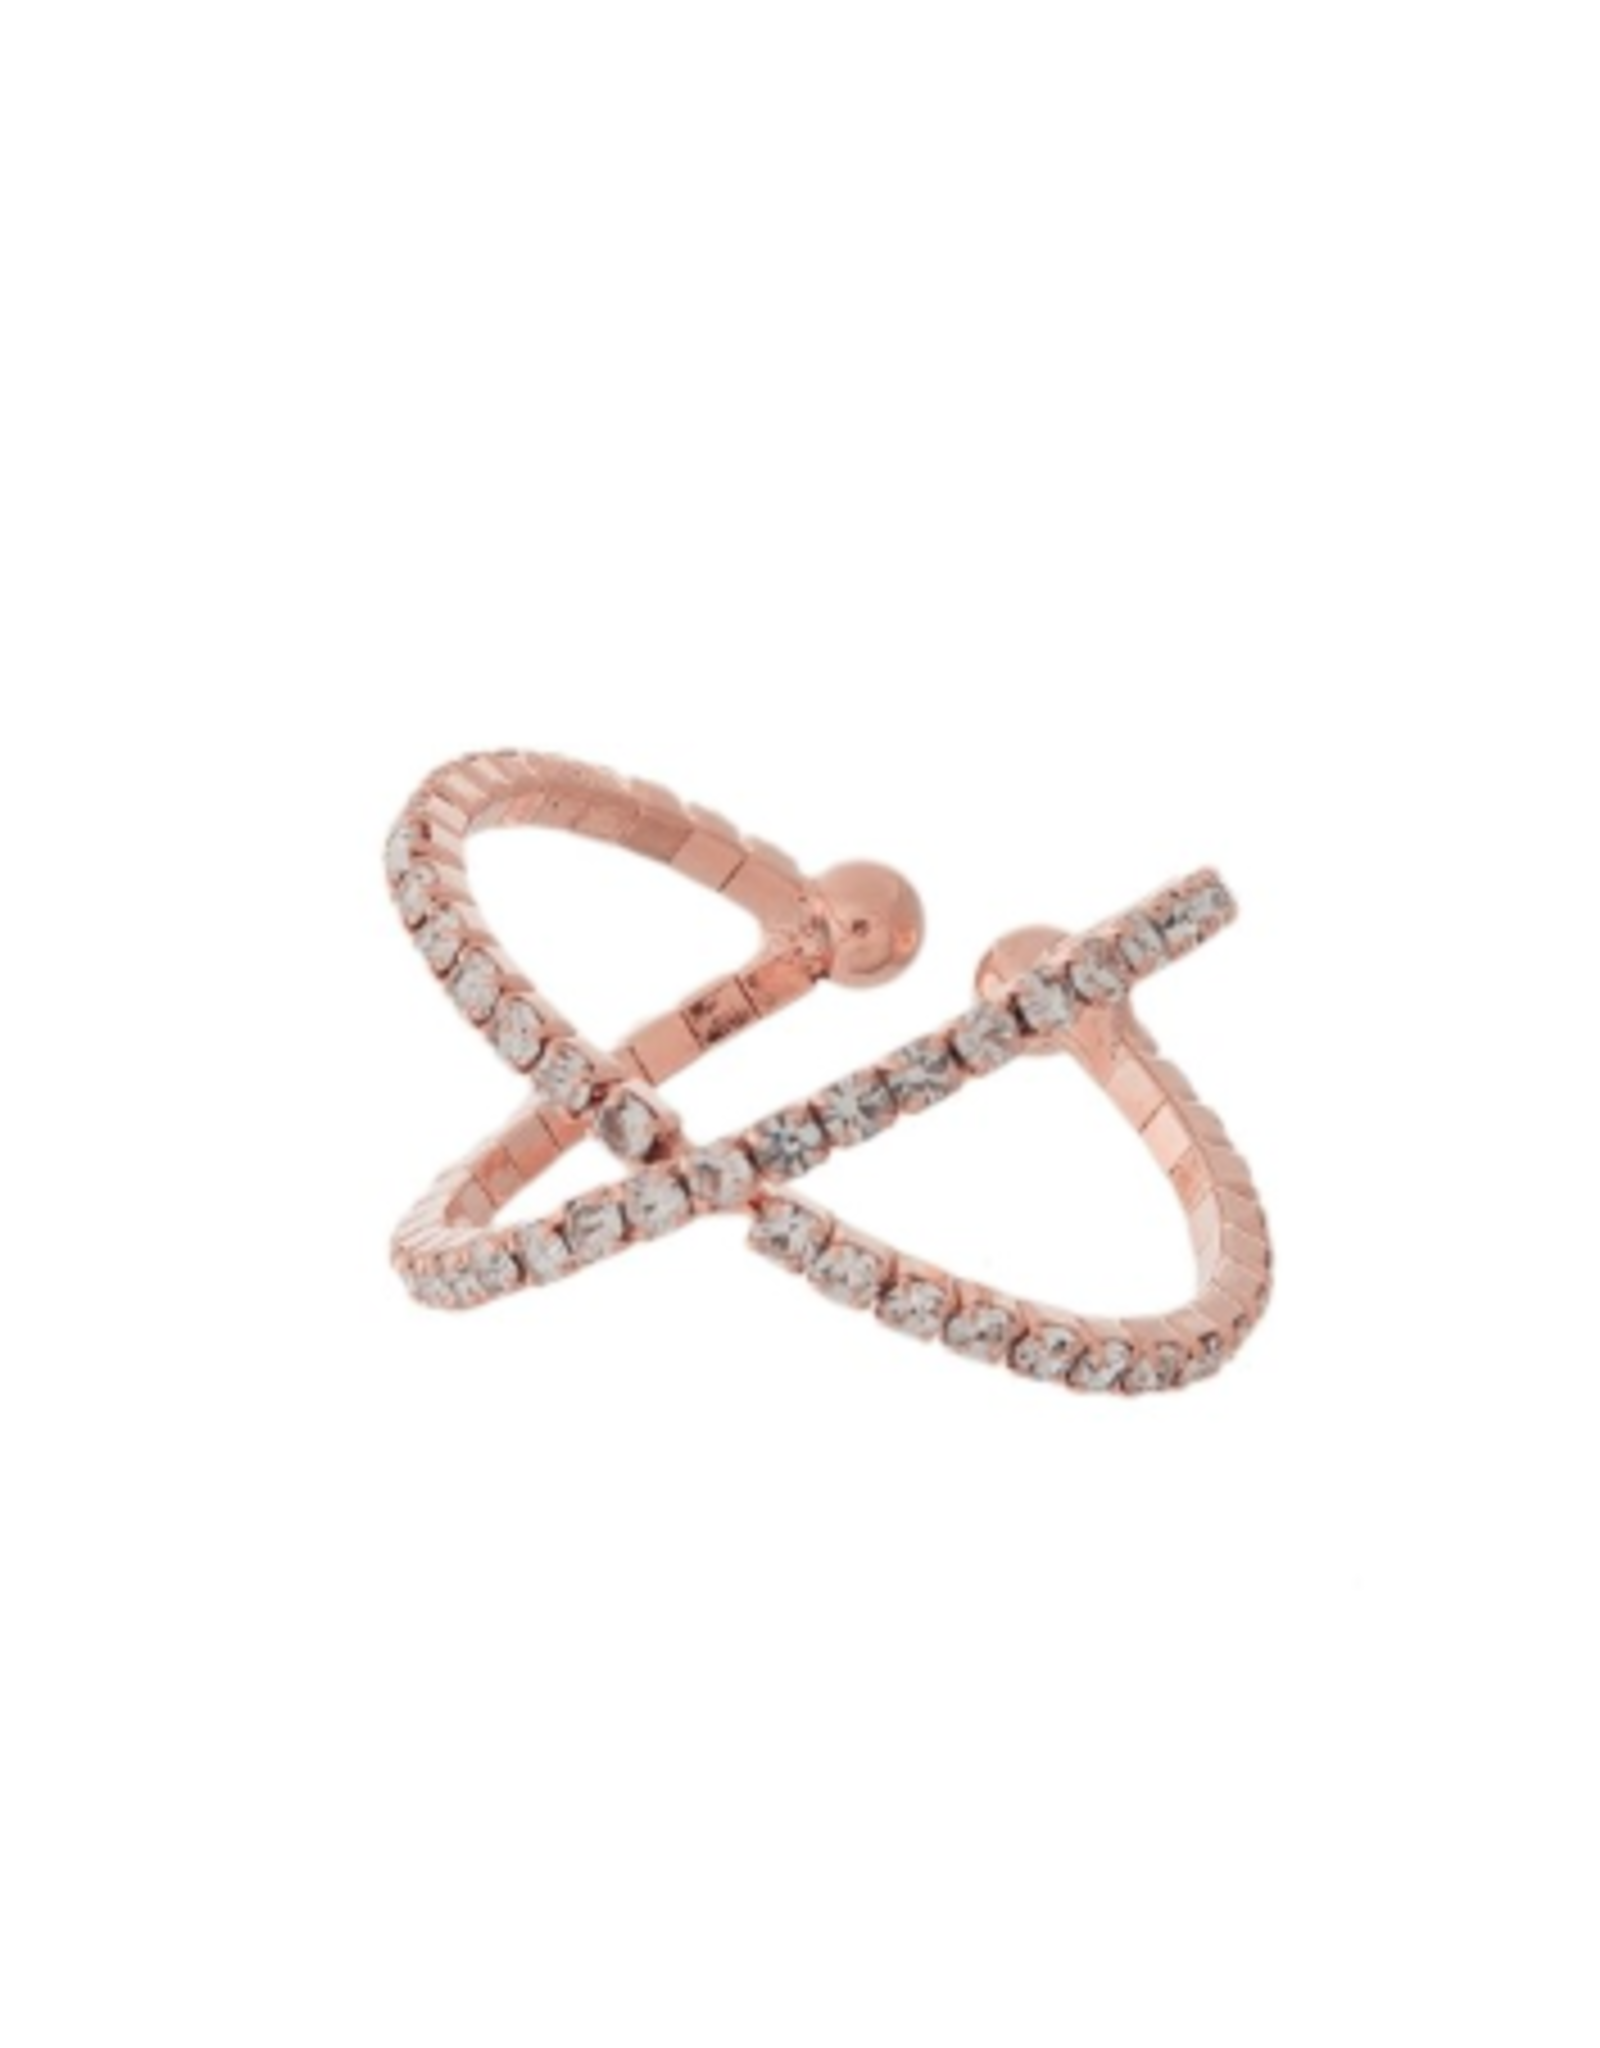 RING ROSEGOLD RHINSTONE CRISS-CROSS